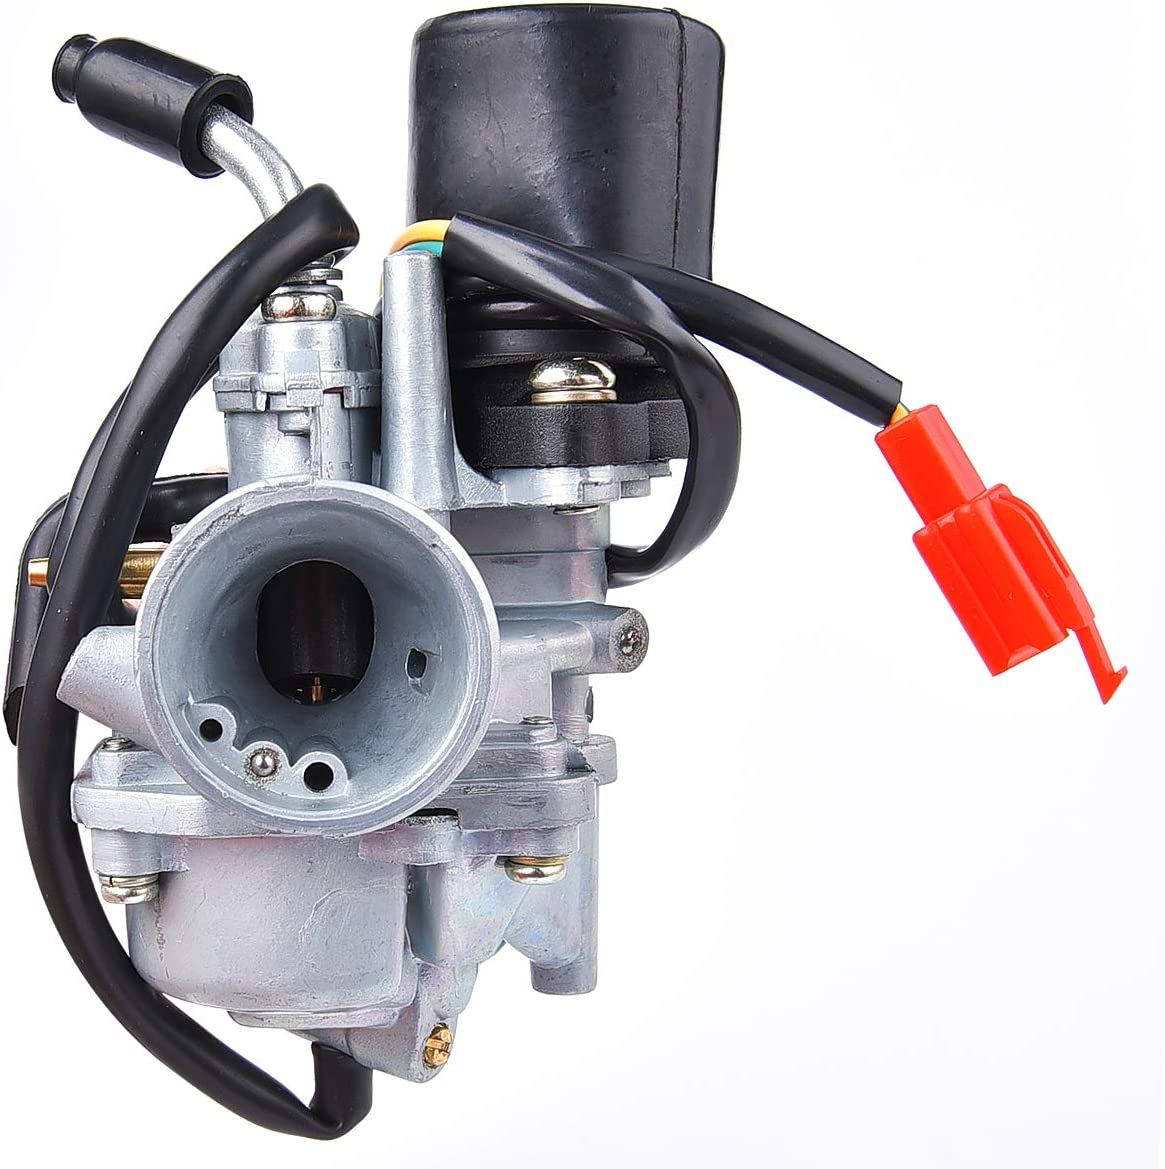 Wingsmoto Carburateur Carb pour Tng Adly Hammerhead Jonway Scooter 49cc 50cc 2 Temps